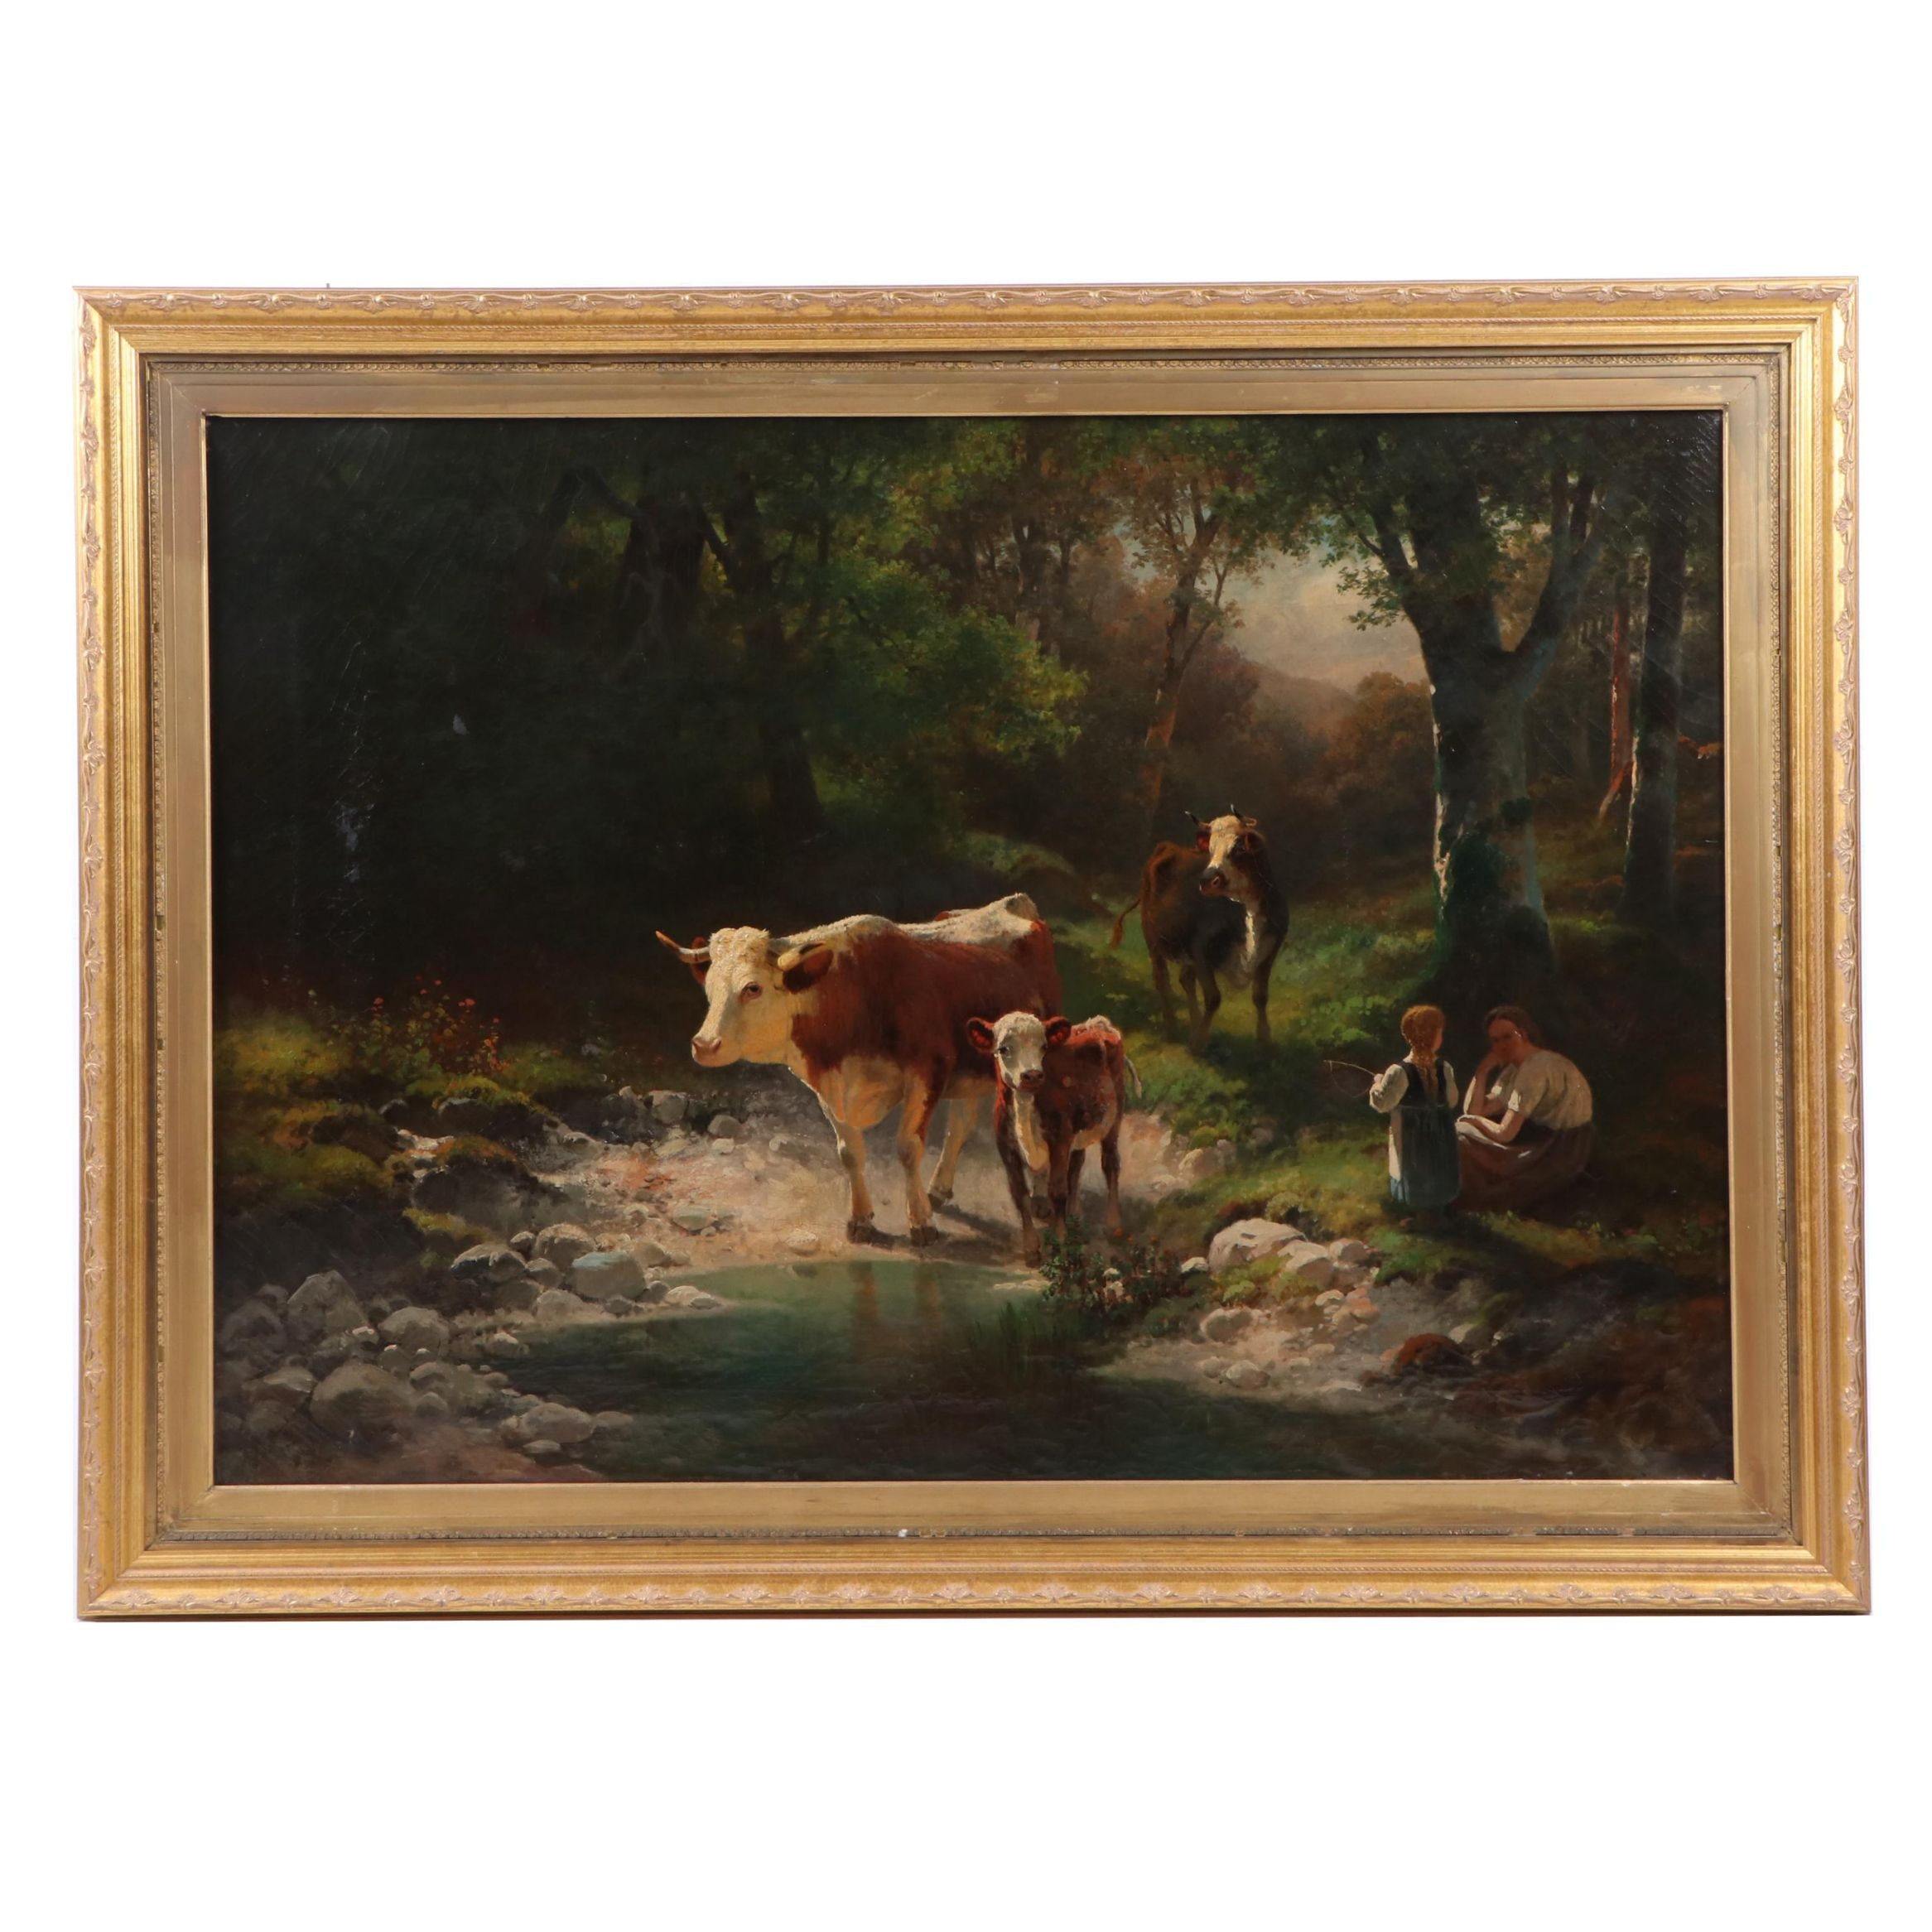 Pastoral Landscape Oil Painting attributed to Kaulbach